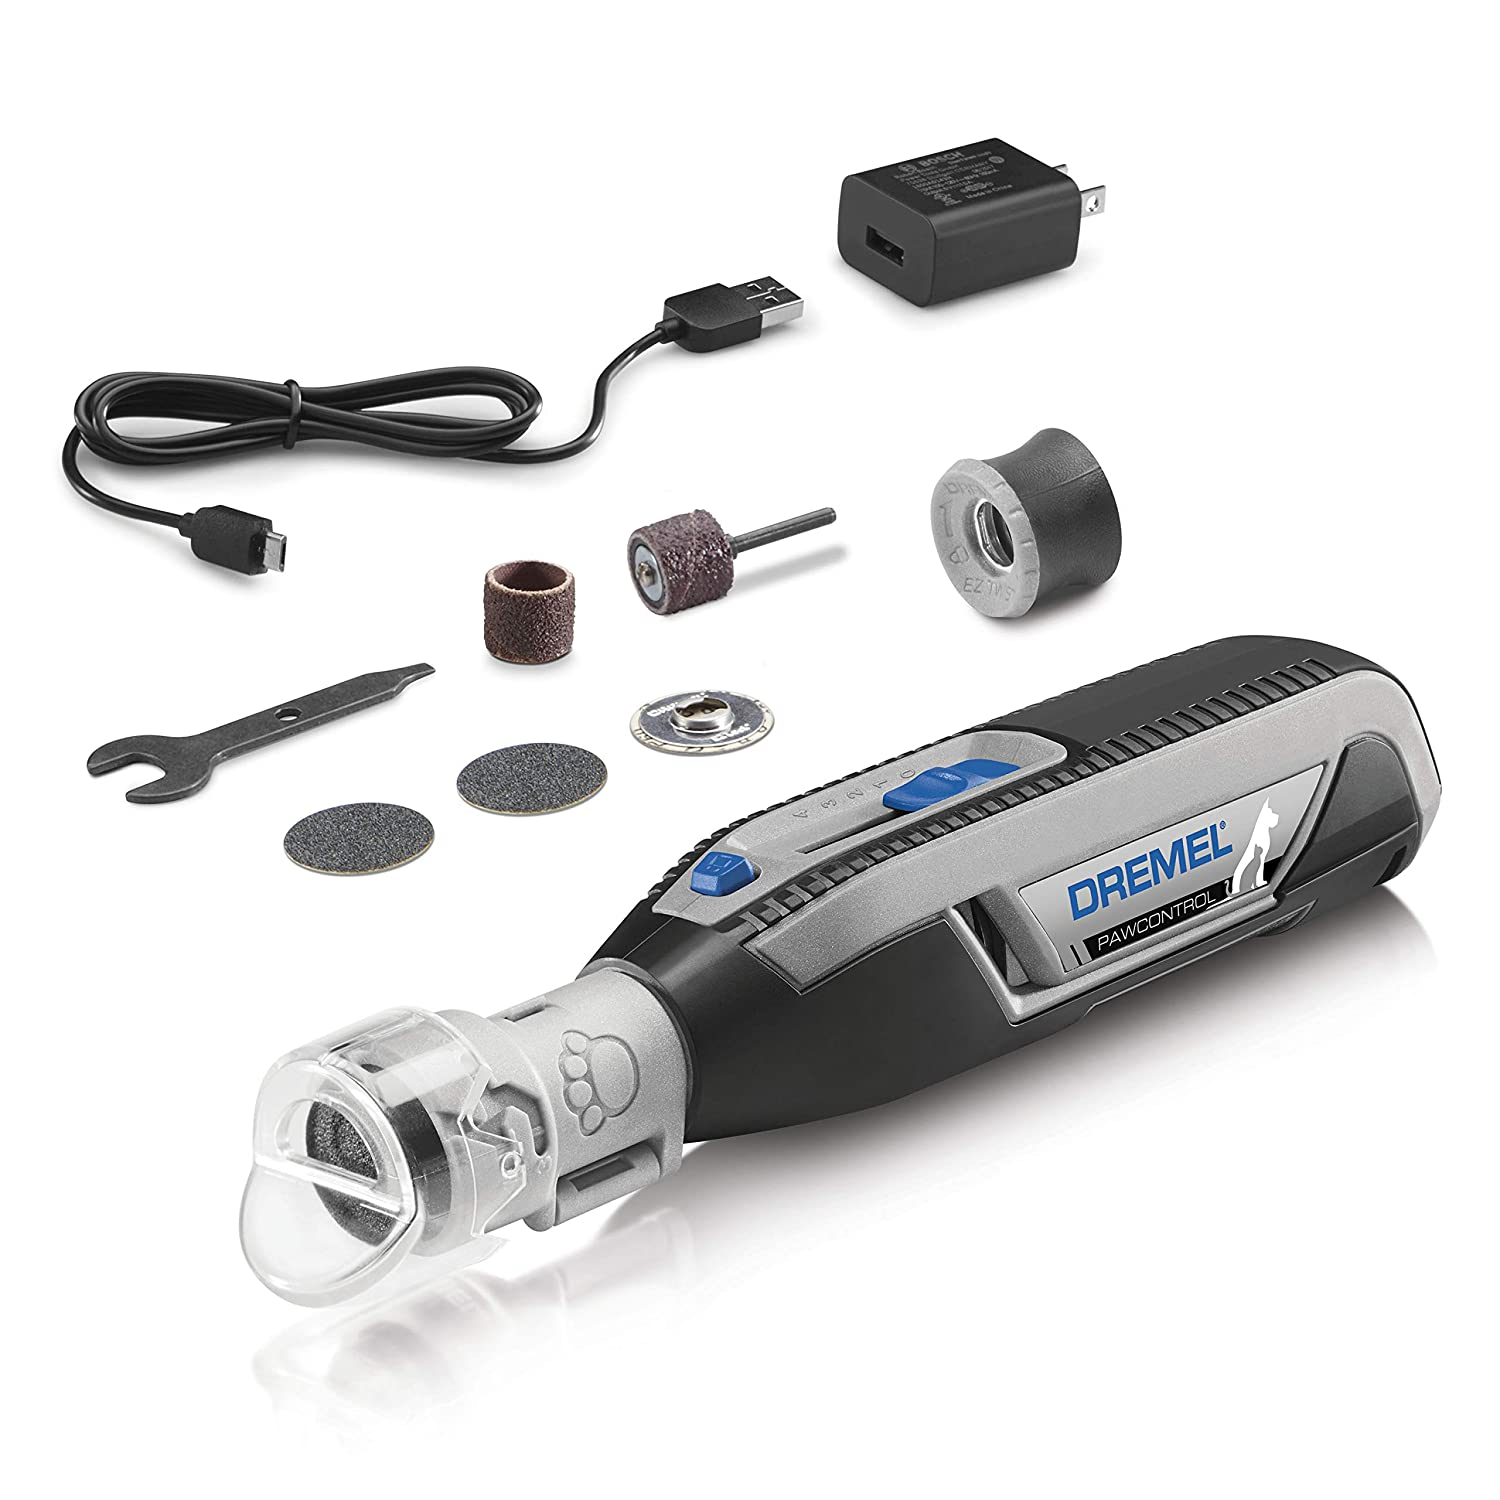 Dremel 7760 Pet Grooming Cordless Kit with Accessories & Attachments